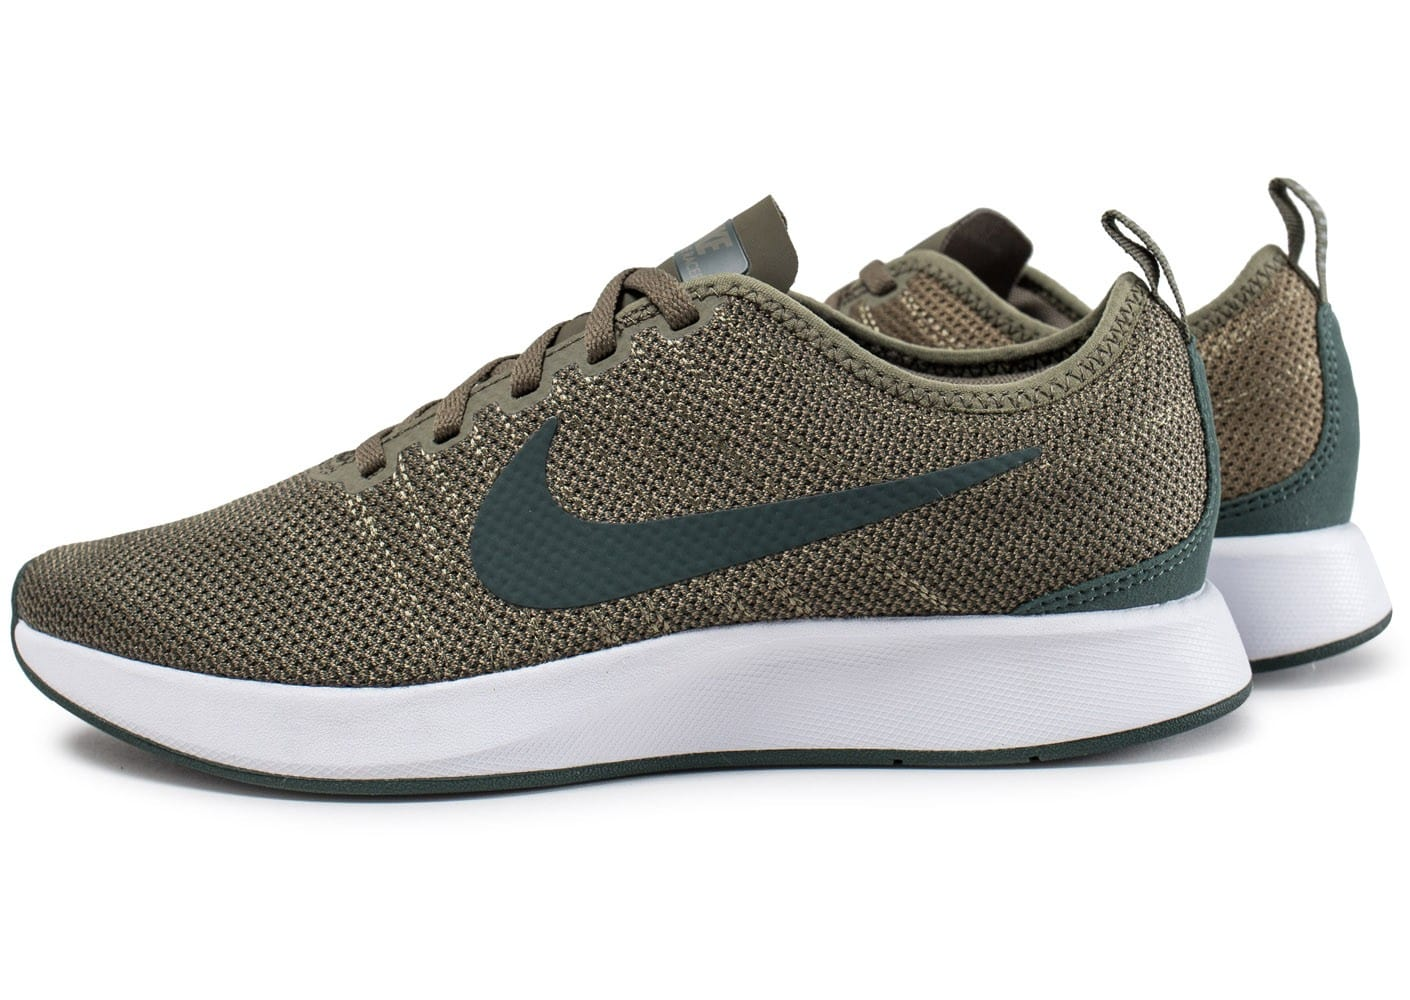 nike dualtone racer olive chaussures homme chausport. Black Bedroom Furniture Sets. Home Design Ideas